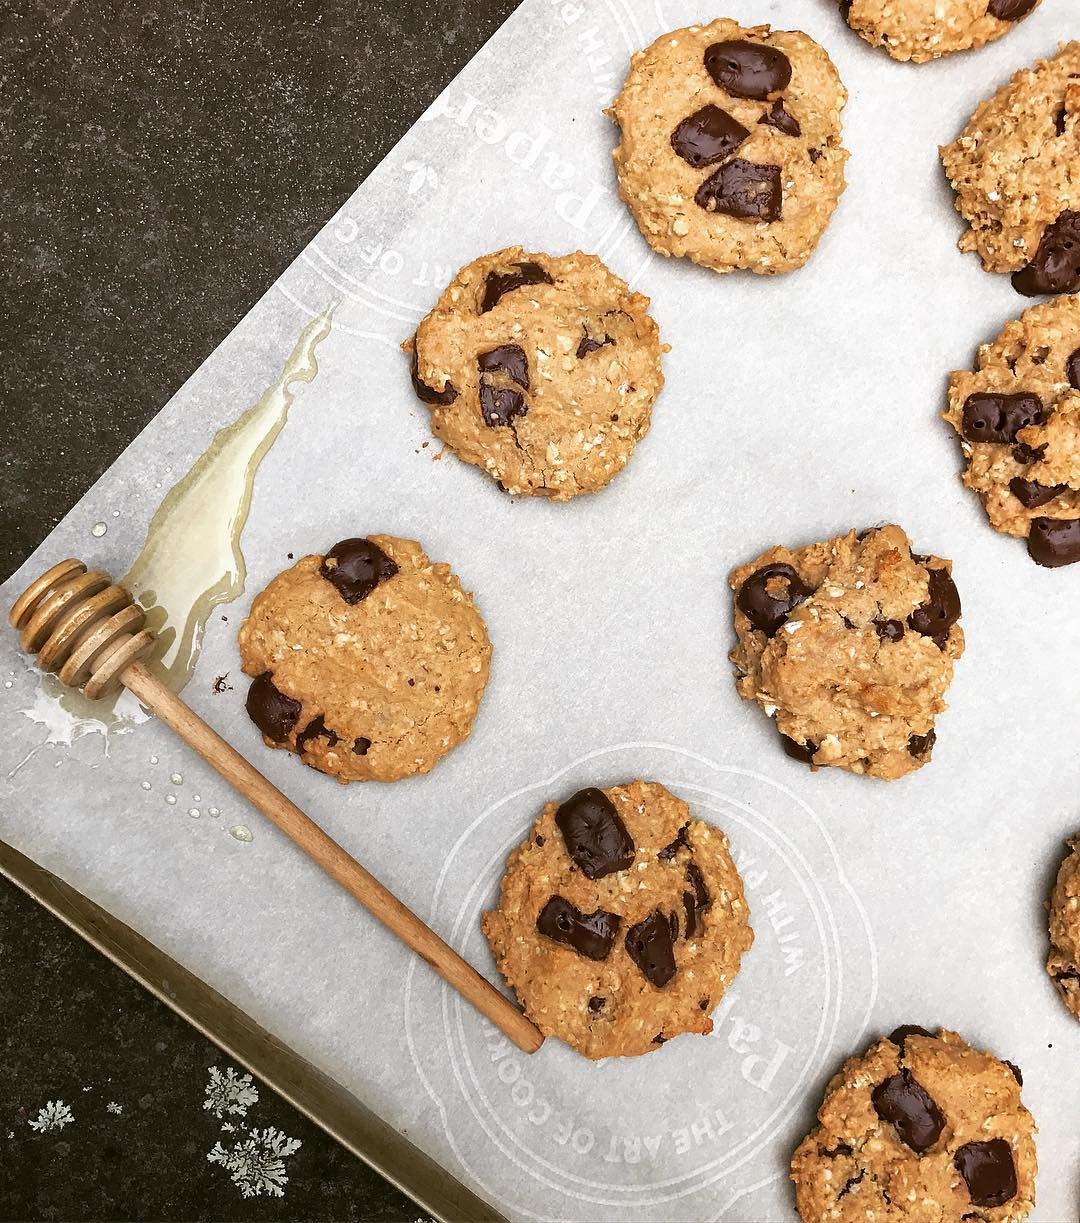 chocolate chip peanut butter oatmeal cookies by @guacnrollin